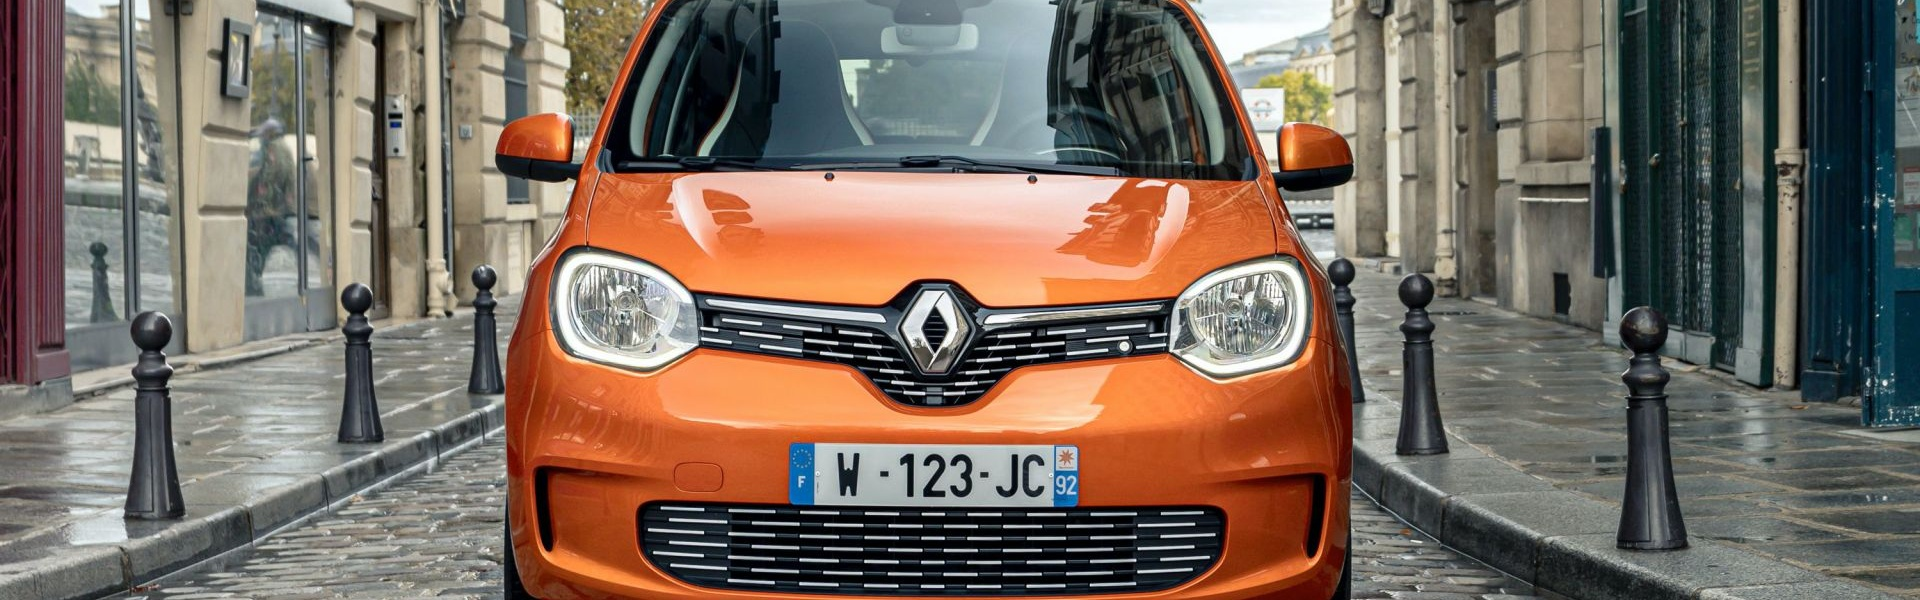 Renault-Twingo-Electric-Vibes-special-edition-11.jpg